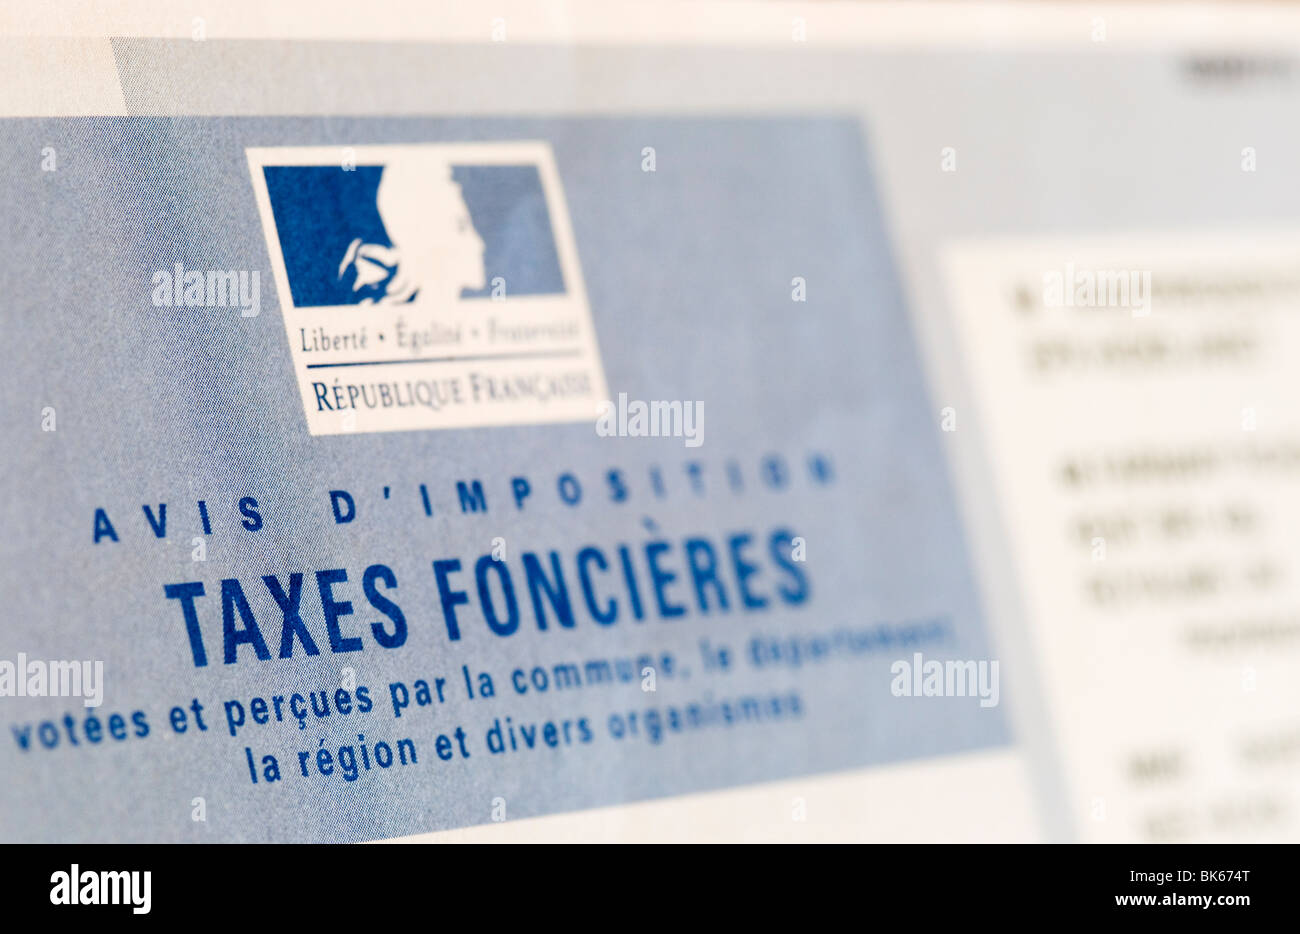 French Taxes Foncieres bill - Stock Image